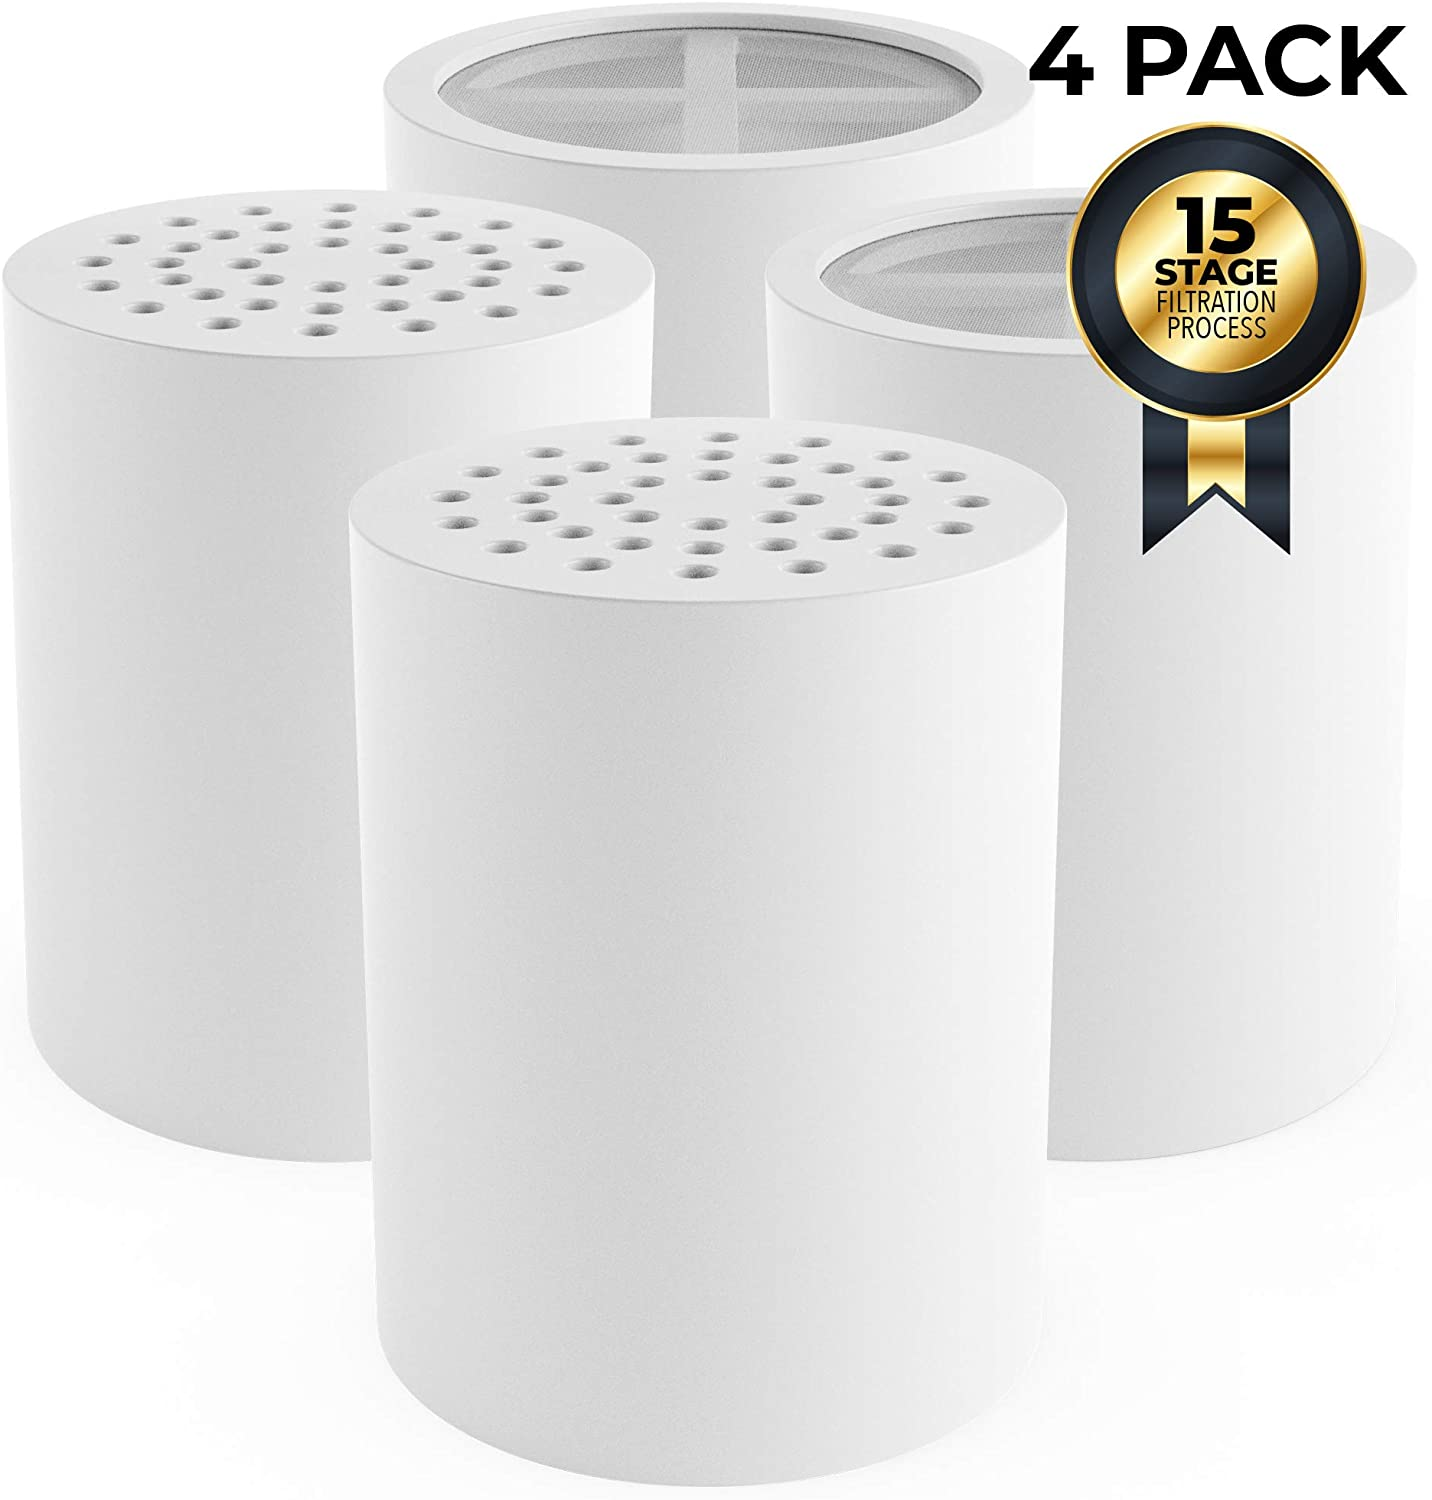 15 Stage replacement Shower Filter Water Purifier Cartridge – Showerhead Water Softener - Remove Chlorine, Fluoride, Hard Water, Rust, Mineral Buildup - Adds Vitamin C and E (4 Pack)